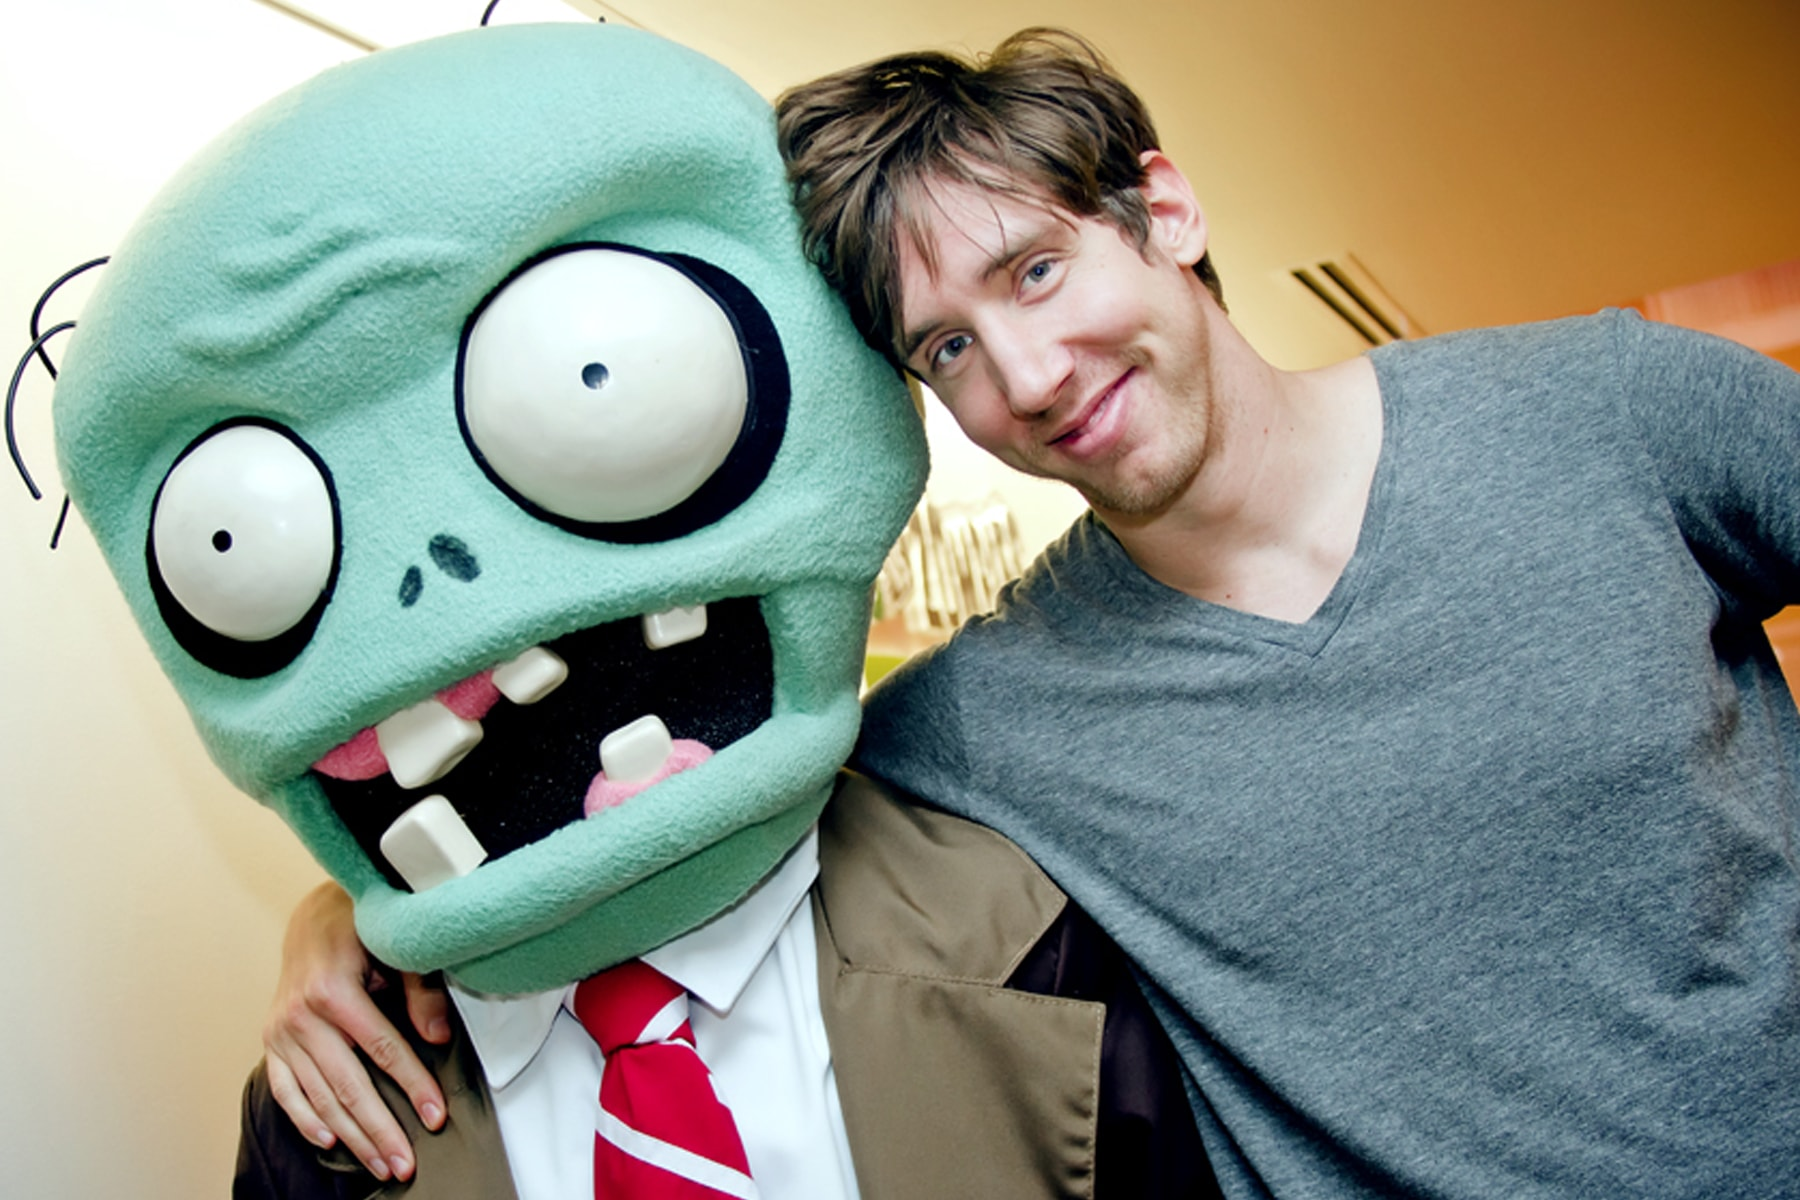 Mark Barrett smiling with his arm around the PopCap zombie mascot